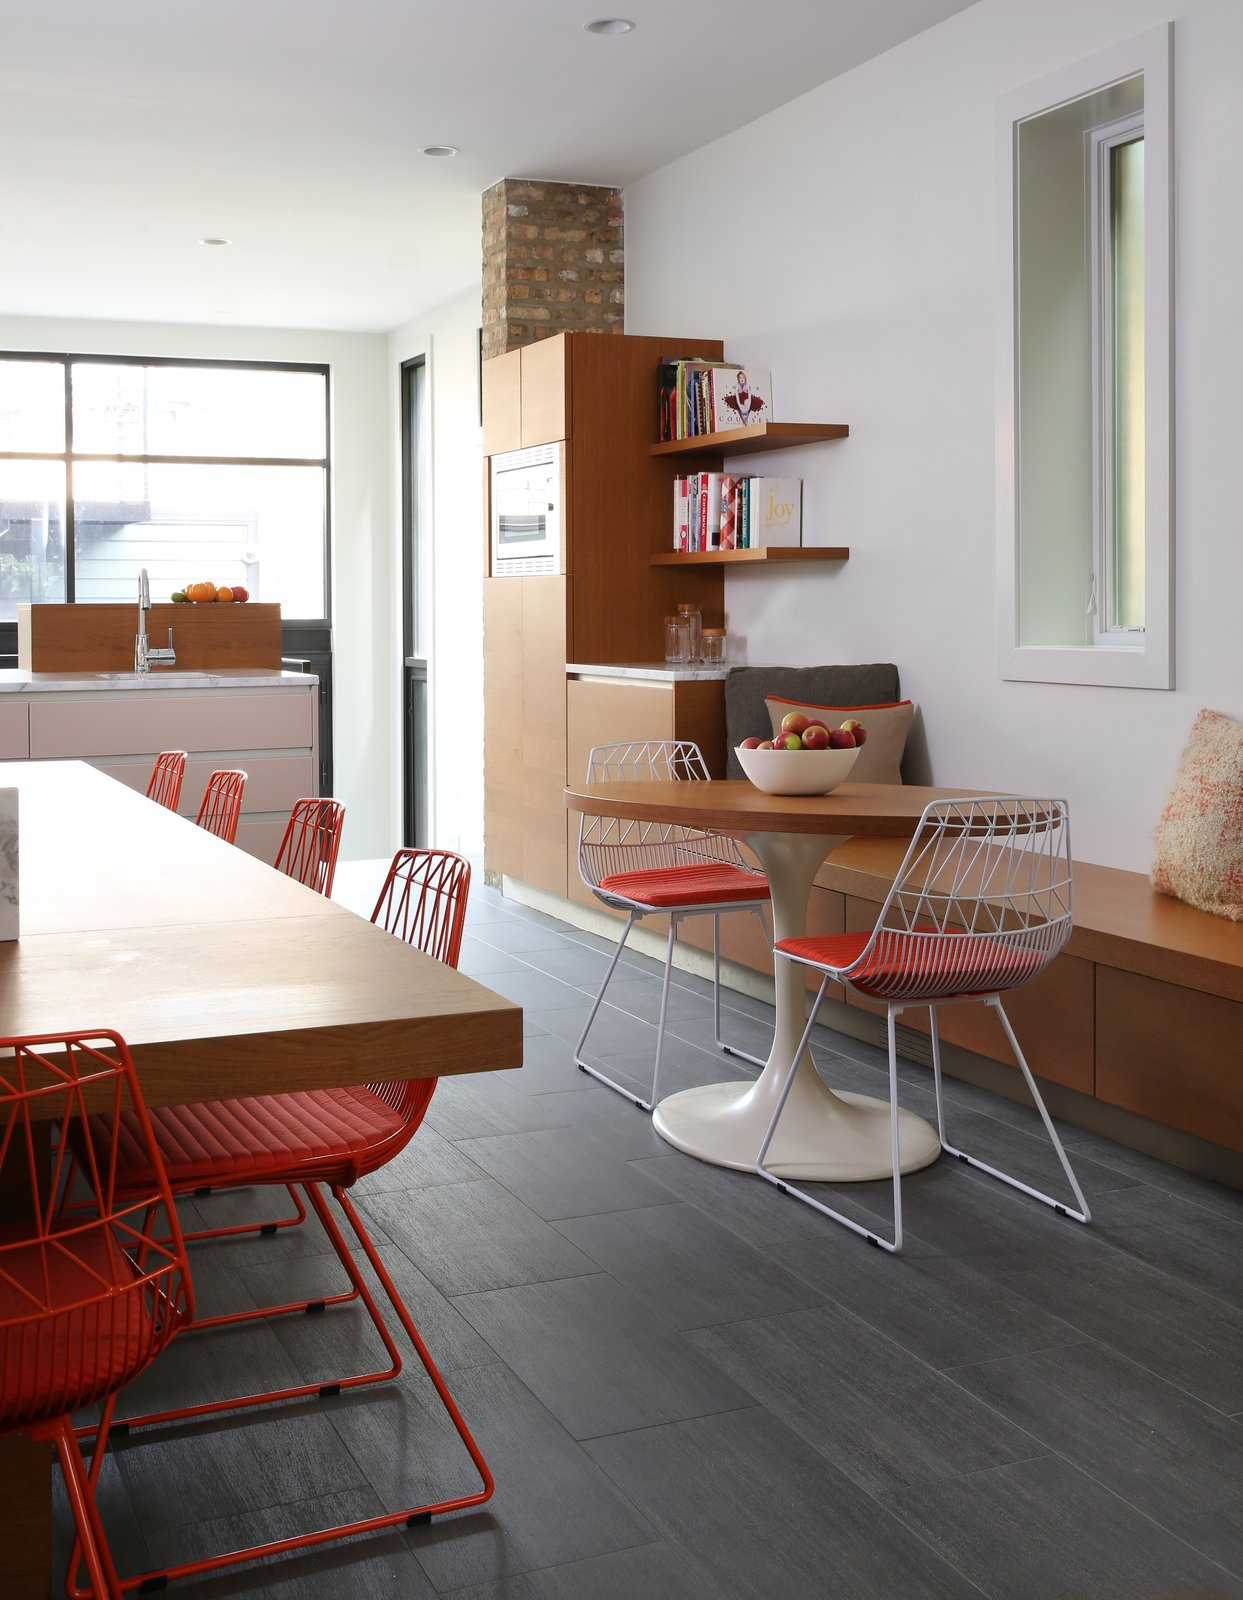 Lucy chairs from Bend and an Eero Saarinen Tulip base outfitted with a custom top offer places to eat and sit in the kitchen. Porcelain tile lines the floor.  Lakeview by Diana Budds